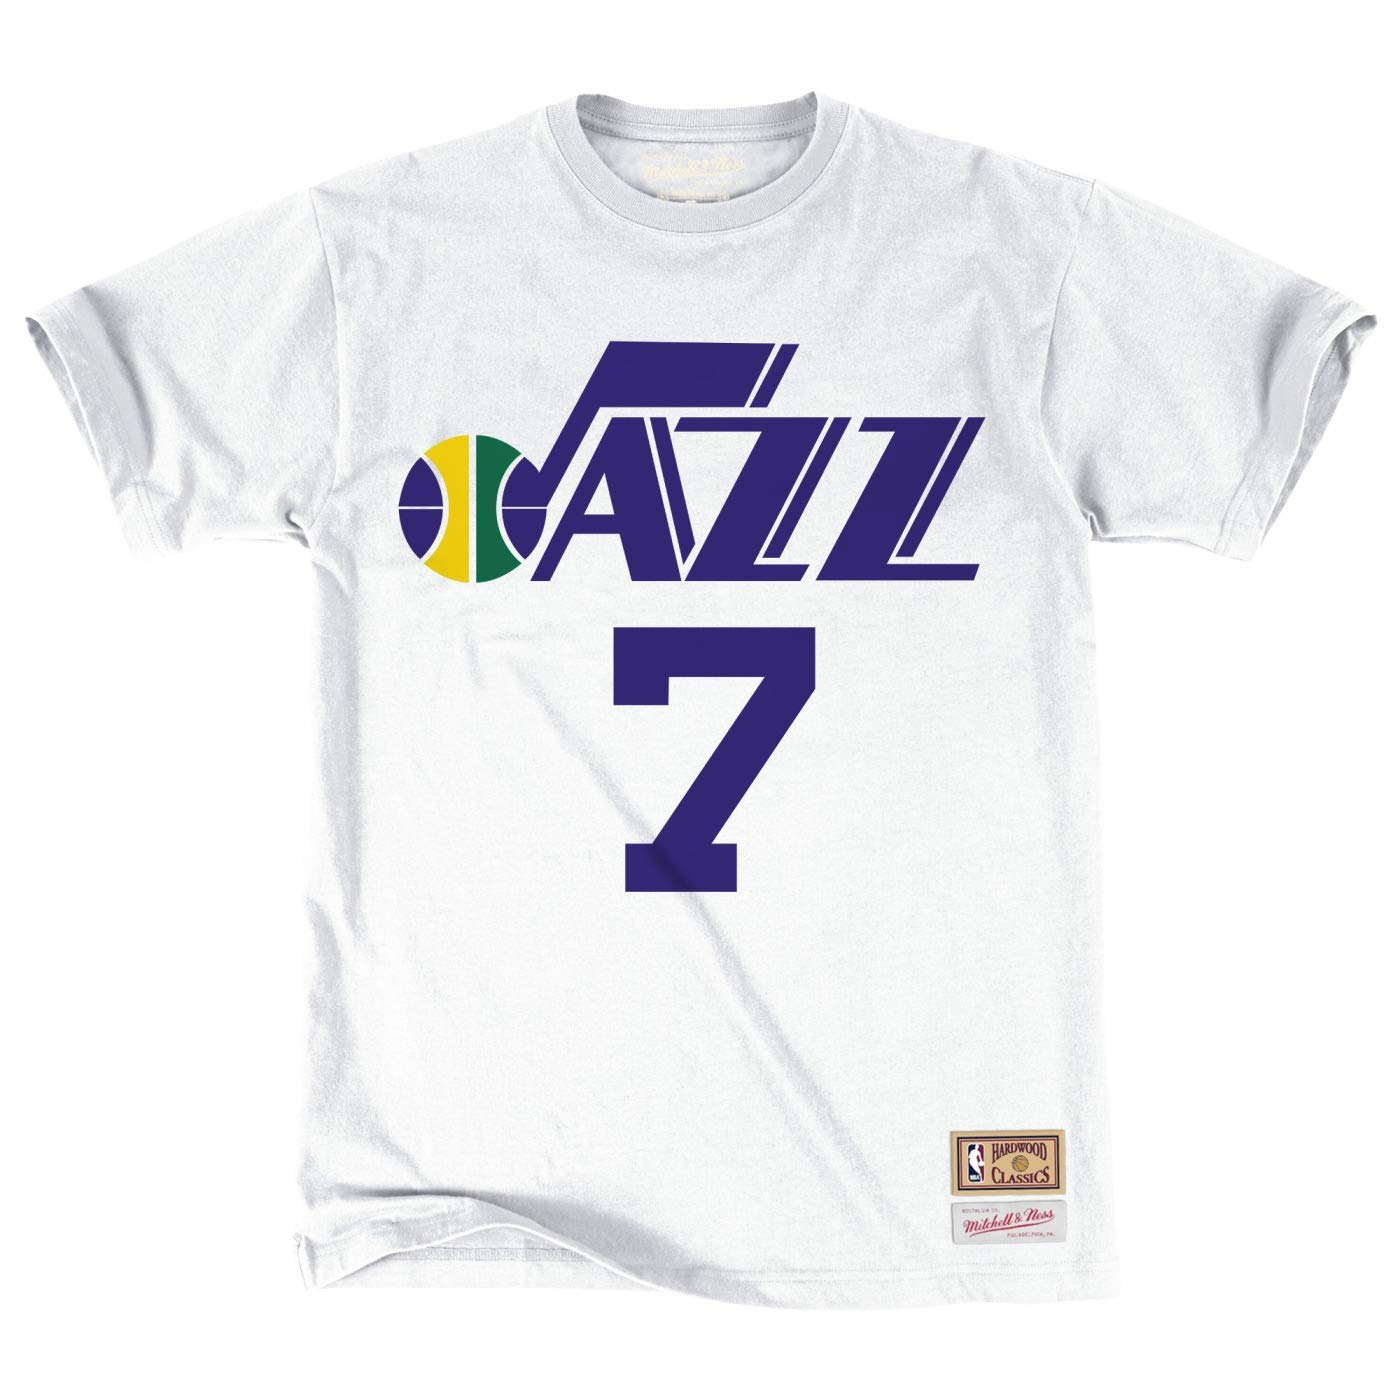 afbac0d0321a Amazon.com   Pete Maravich Utah Jazz NBA Mitchell   Ness White Hardwood  Classics Retro Player N N Jersey T-Shirt For Men   Sports   Outdoors